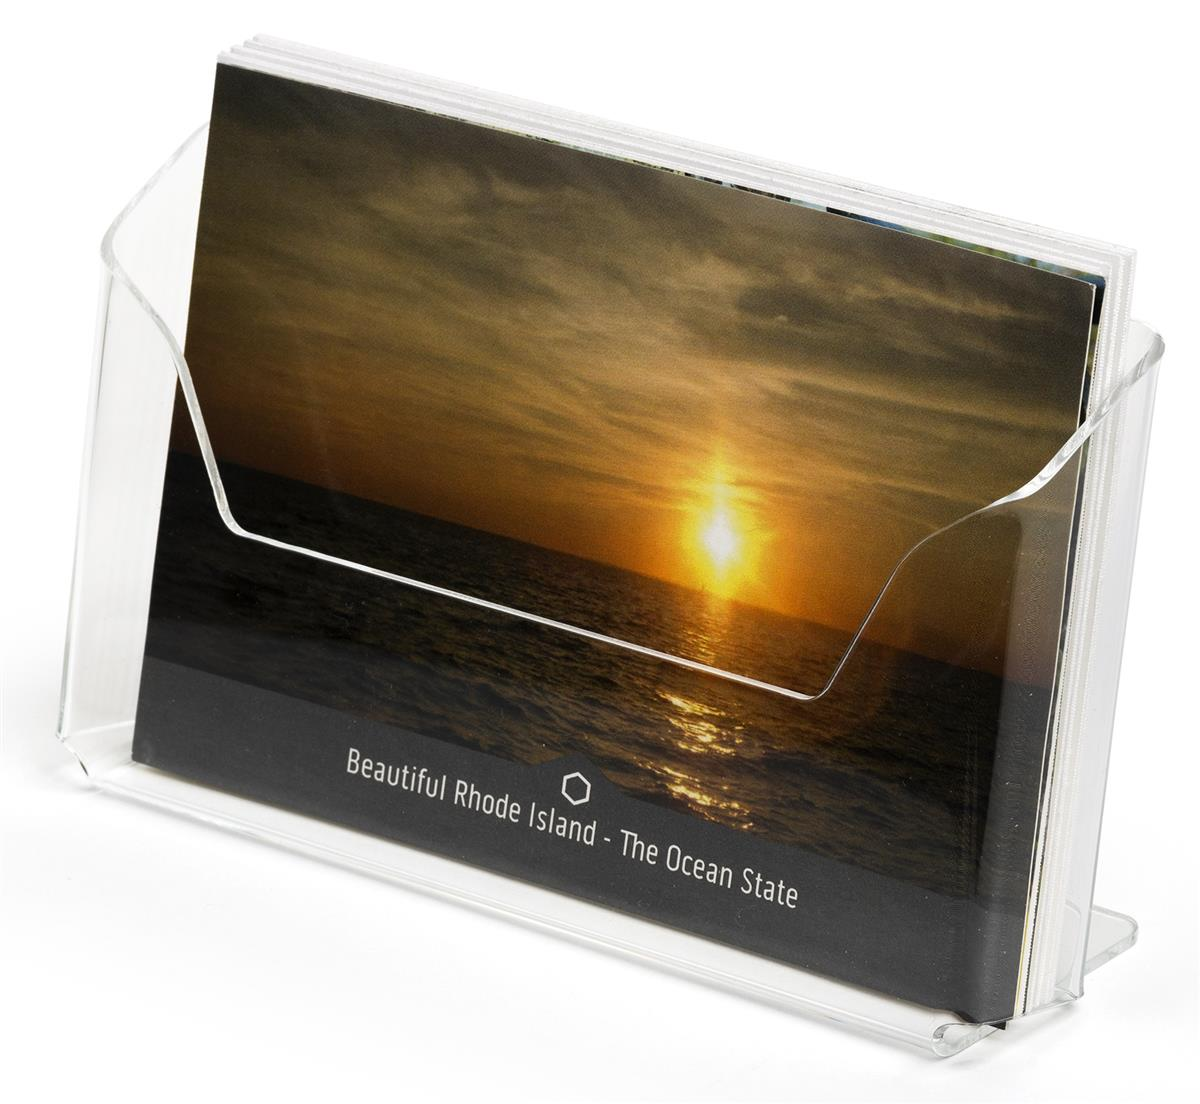 Booths For Sale >> Post Card Pocket   Clear Acrylic Display for Gift Shops